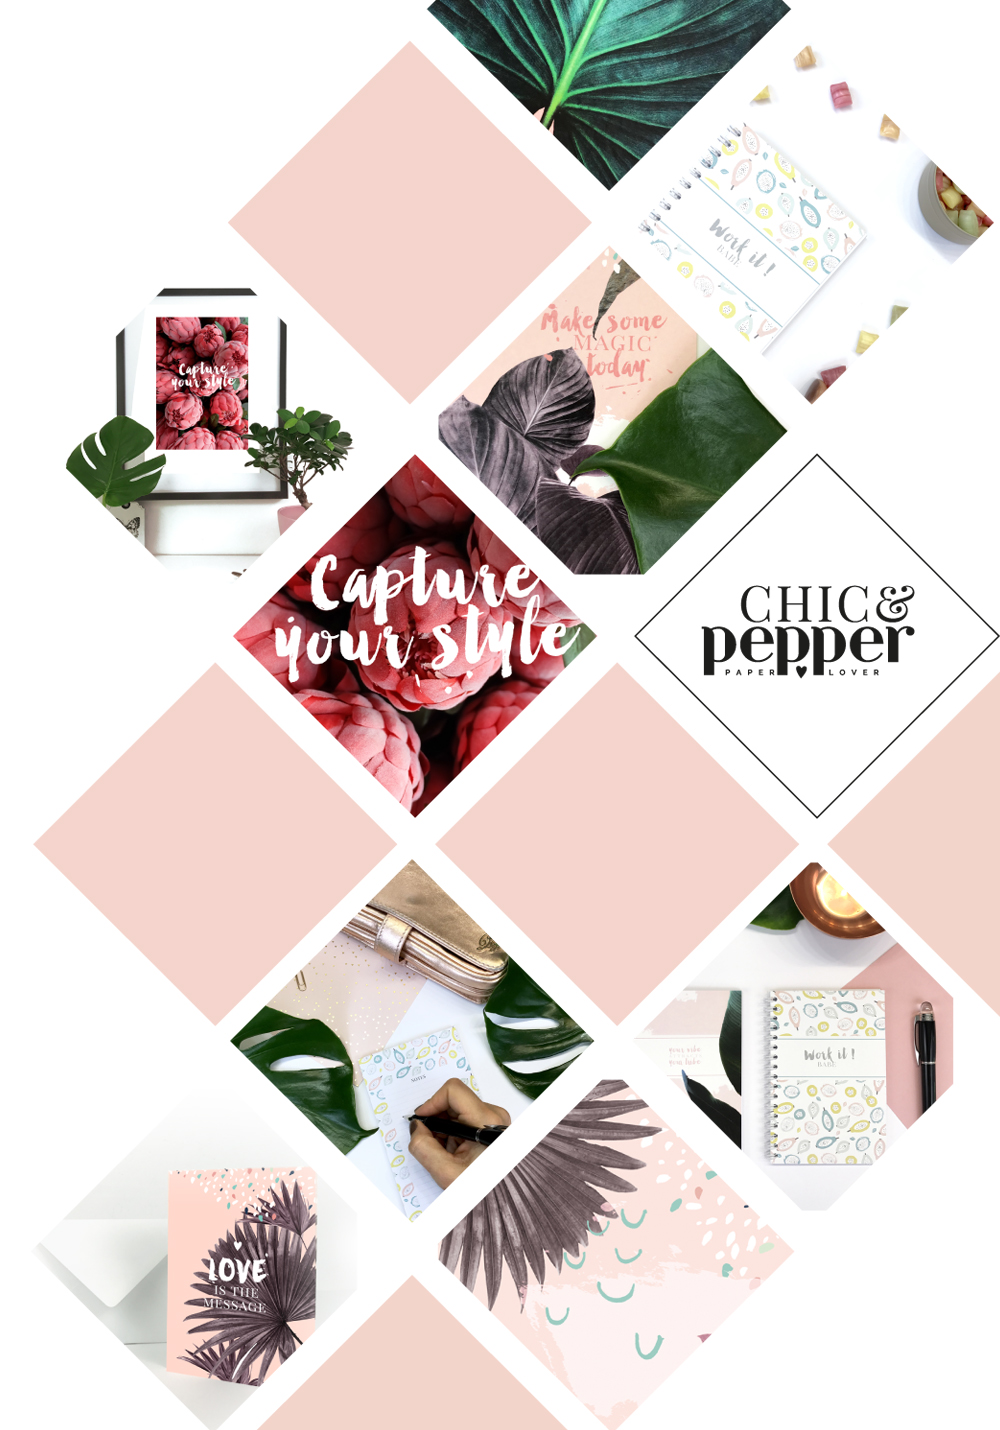 Air Chic Design:disque externe:EXOChic:1 -POSTS:1 - ARTICLES:2018:02 - FÉVRIER:02 LANCEMENT CHIC & PEPPER:image blog:Papeterie Chic and Pepper - Exochic 2 .jpg